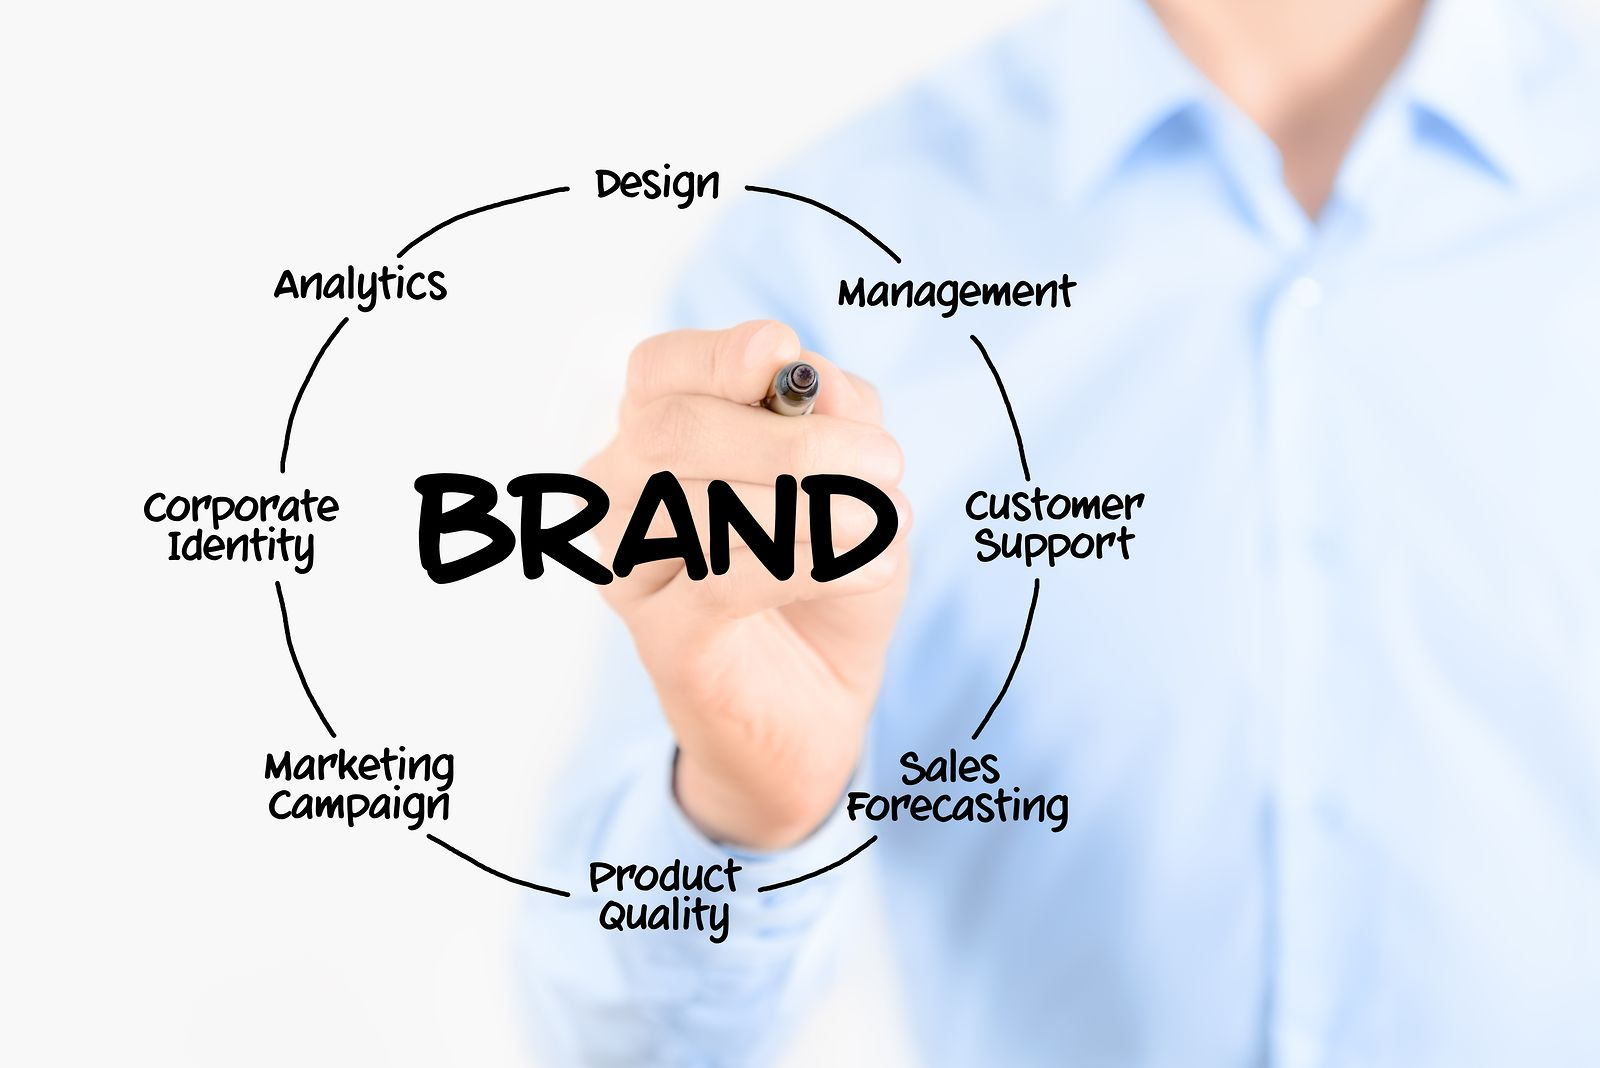 7 Keys to Building a Successful Brand